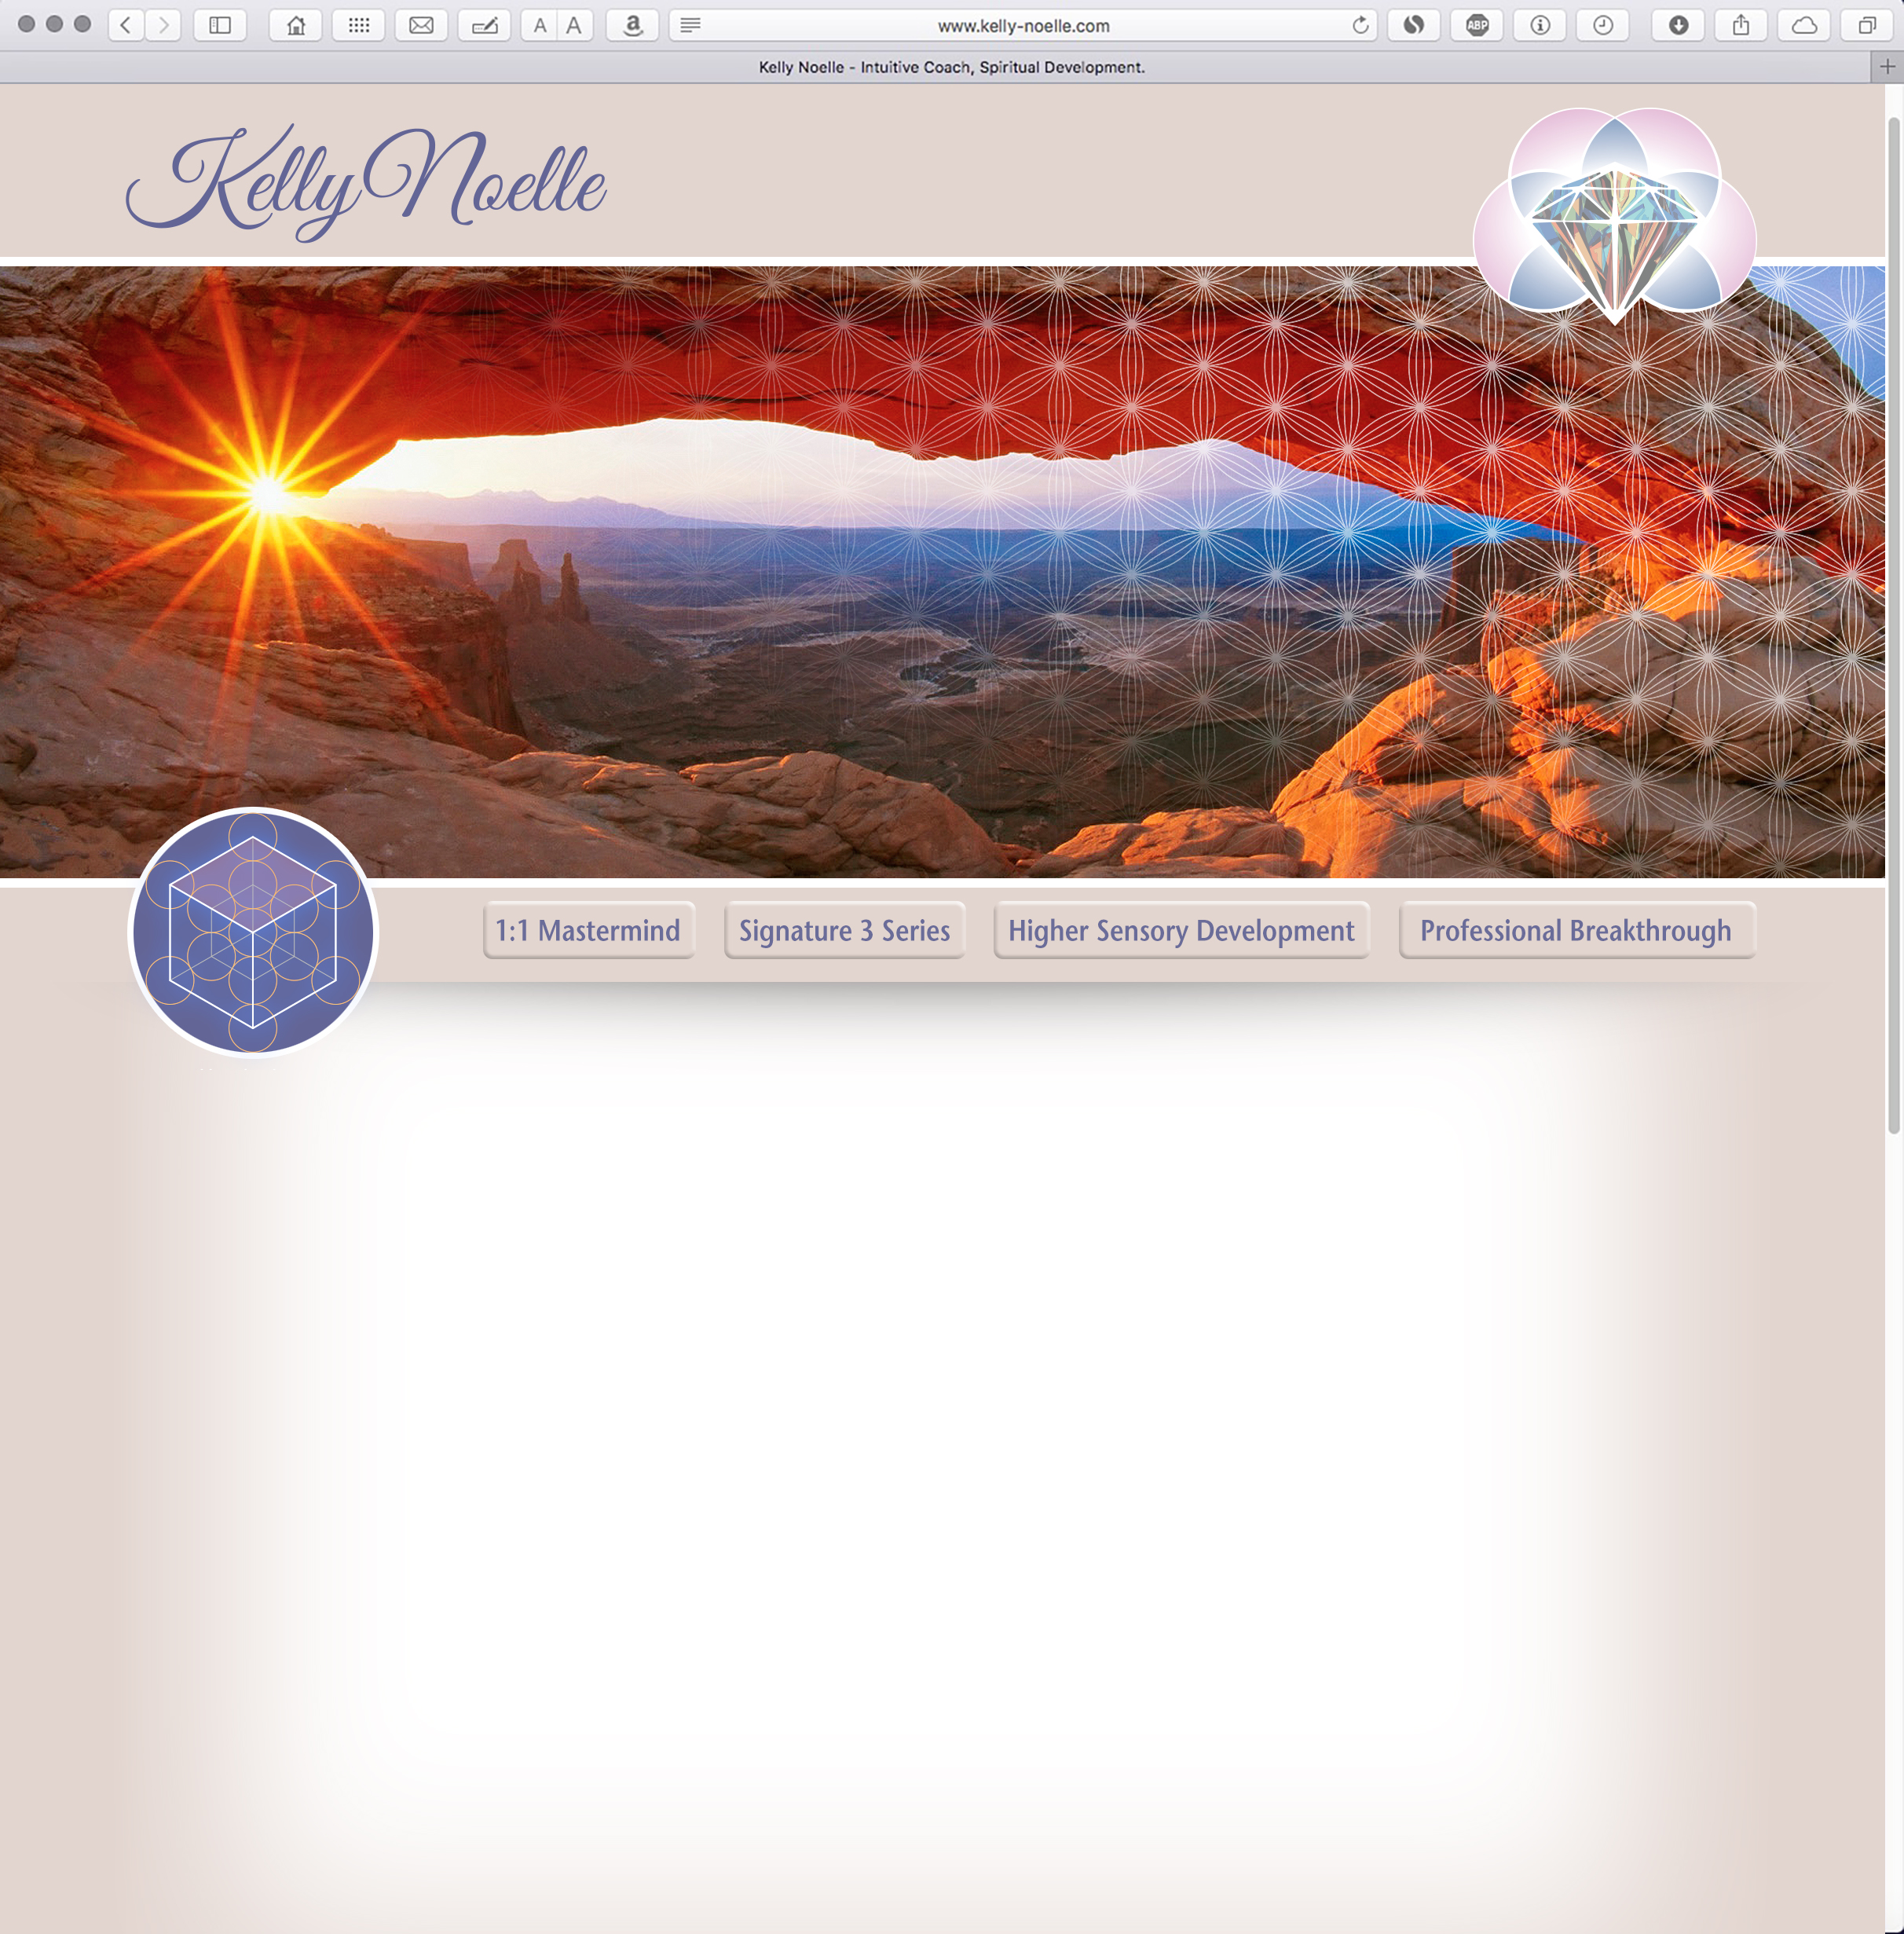 Kelly Noelle Web Site Design